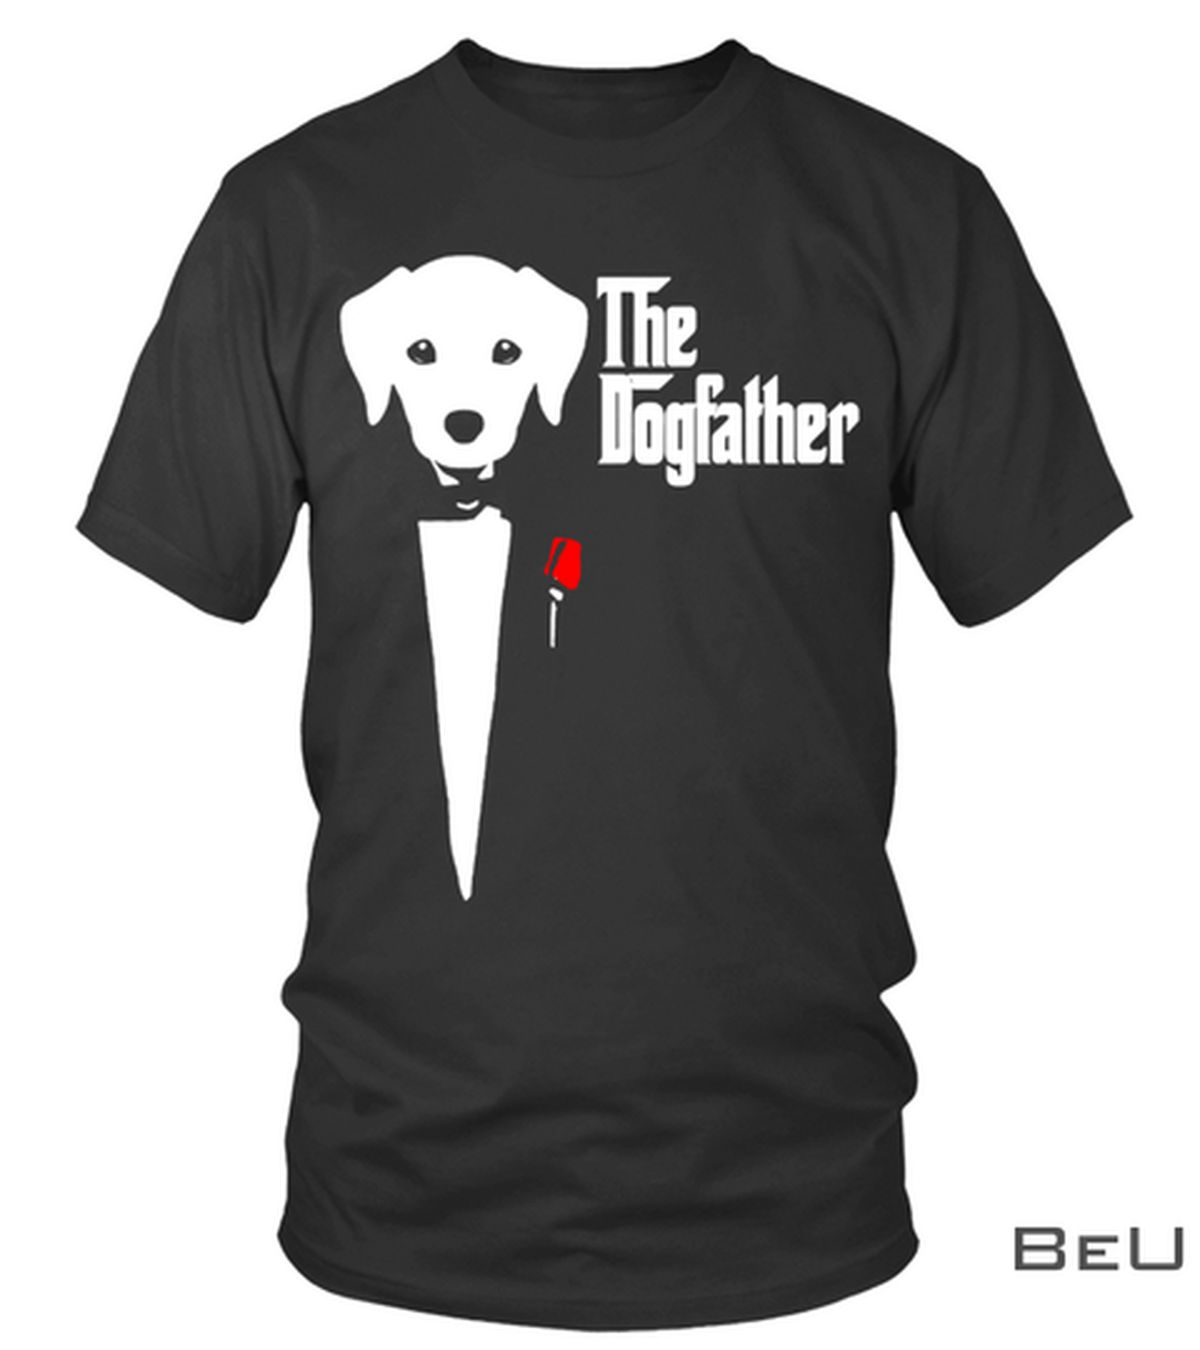 The Dogfather Shirt, hoodie, tank top